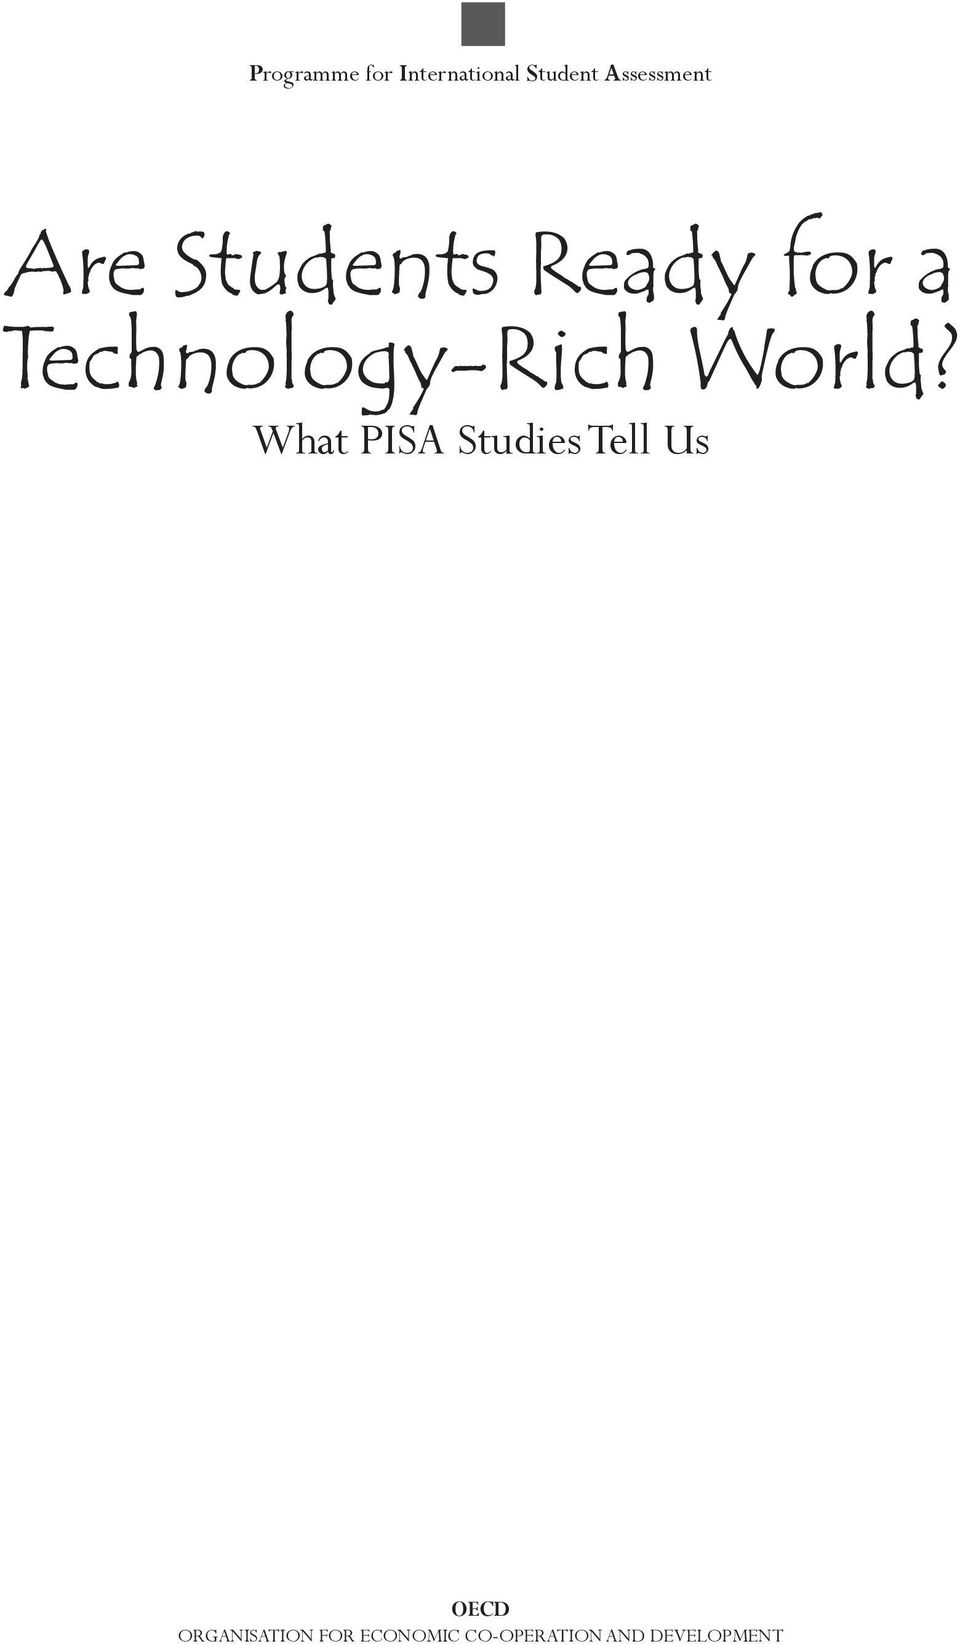 Technology-Rich World?